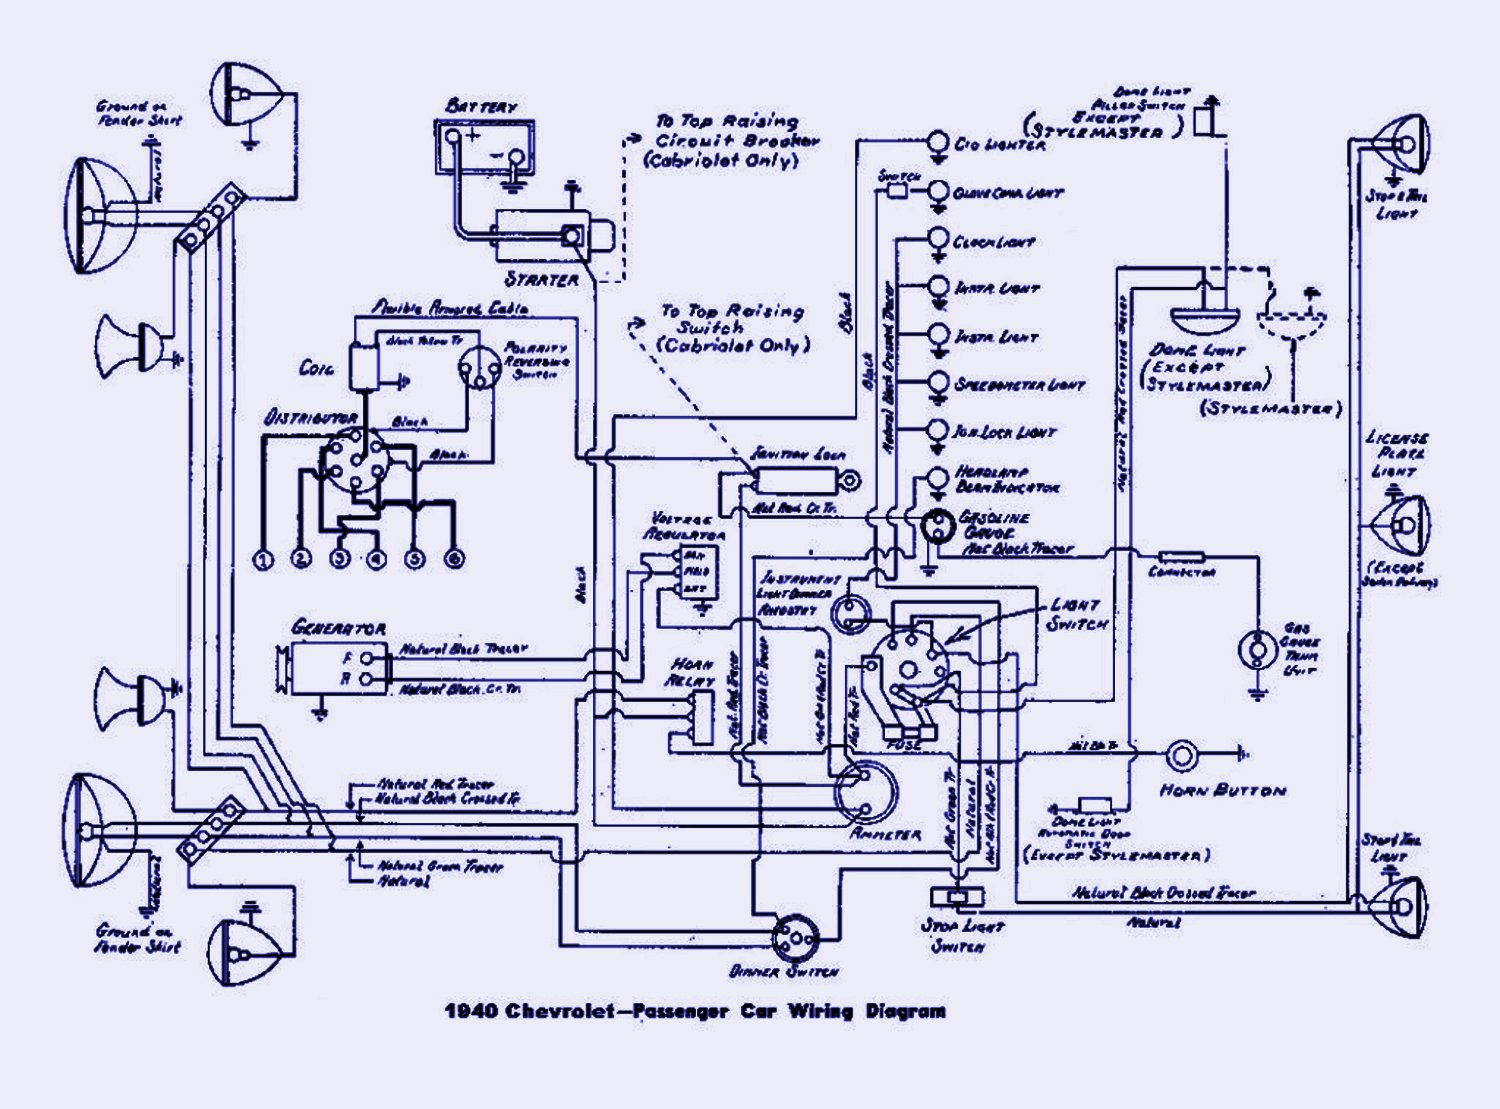 69 mustang wiring diagram wiring diagrams mashups co Vp44 Wiring Diagram 1969 pontiac 350 engine diagram wiring schematic 1 1969 mustang wiring diagram 1963 pontiac wiring diagram vp44 wiring diagram